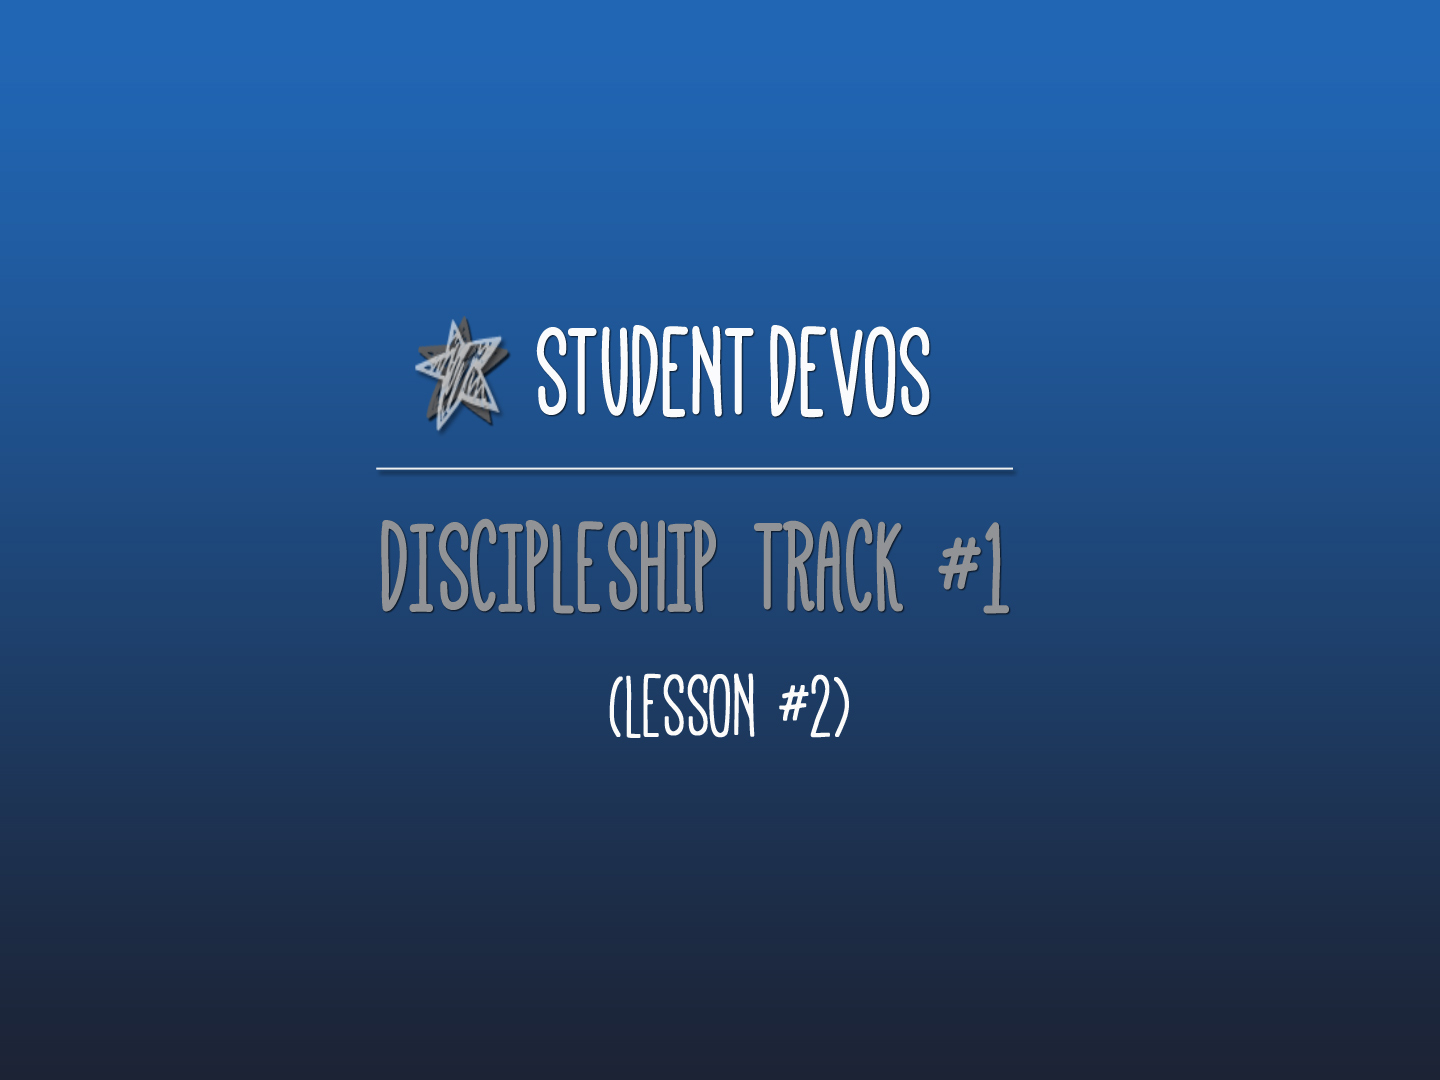 Youth Discipleship Lesson 2